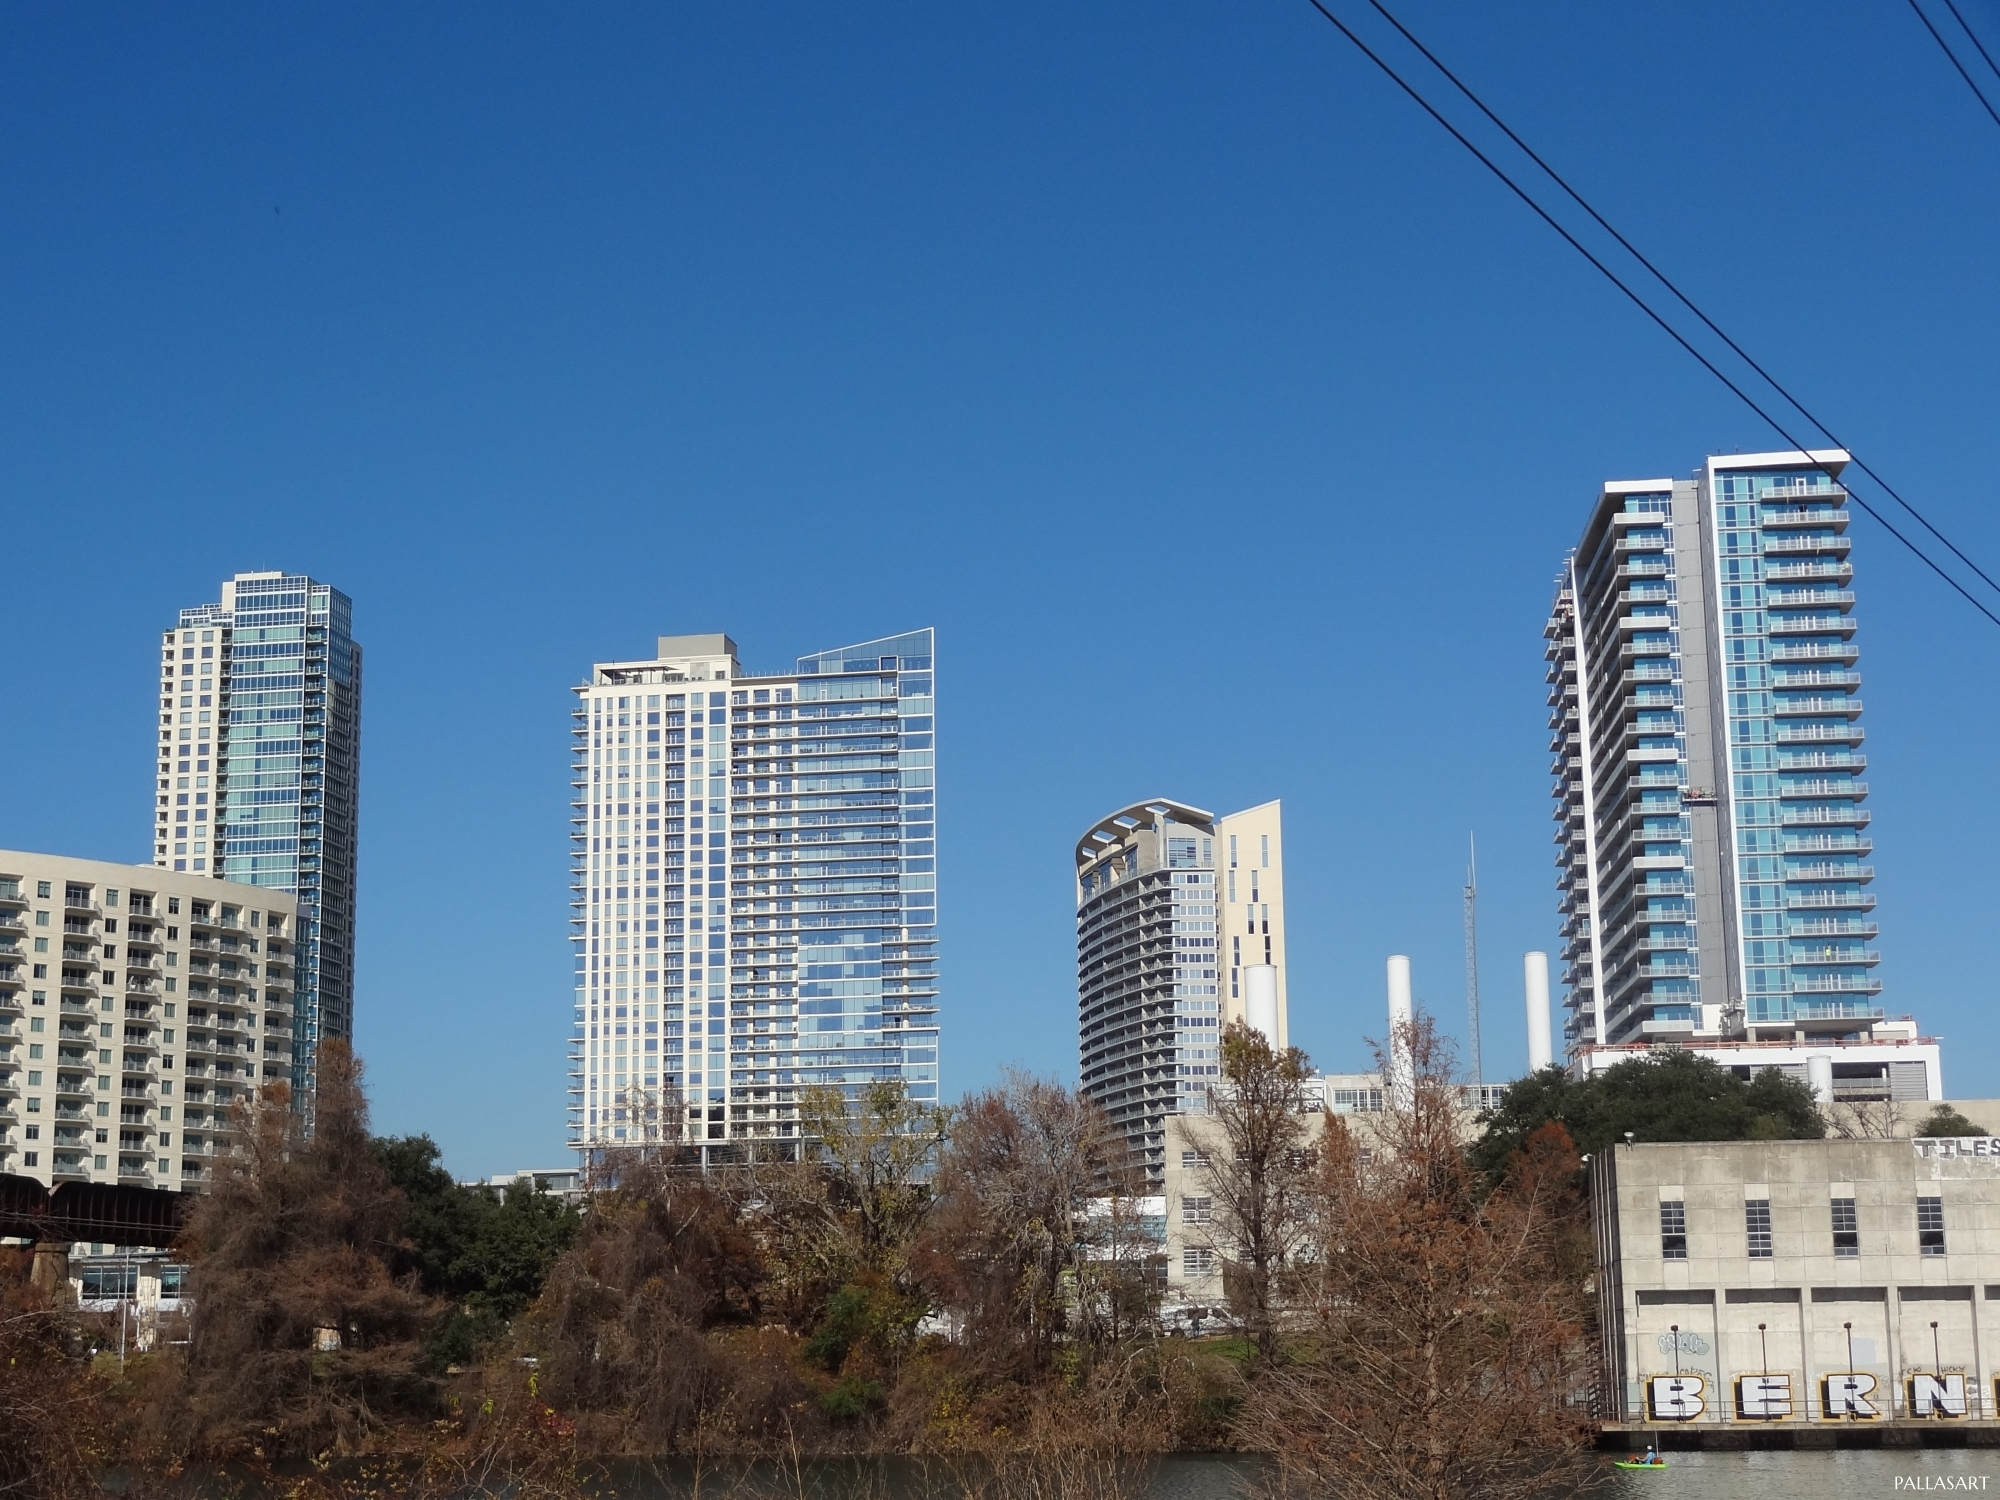 The Spring, The Bowie, The Monarch, and Seaholm residential towers